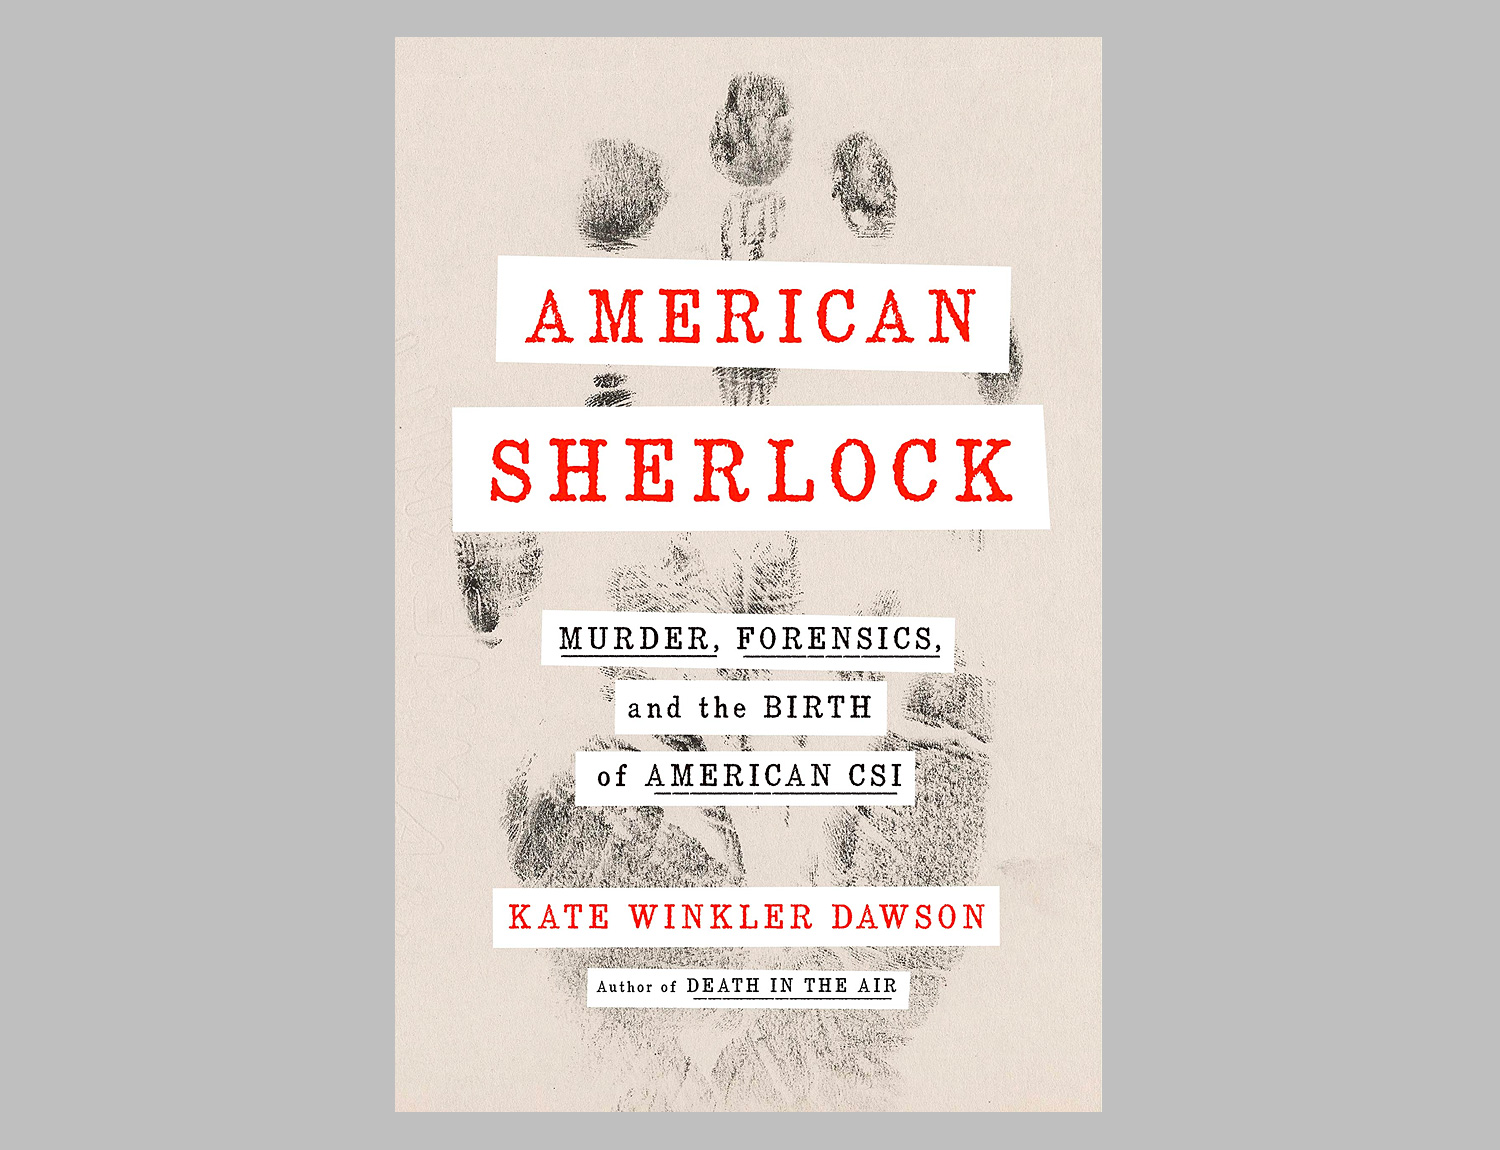 American Sherlock: Murder, Forensics, and the Birth of American CSI at werd.com